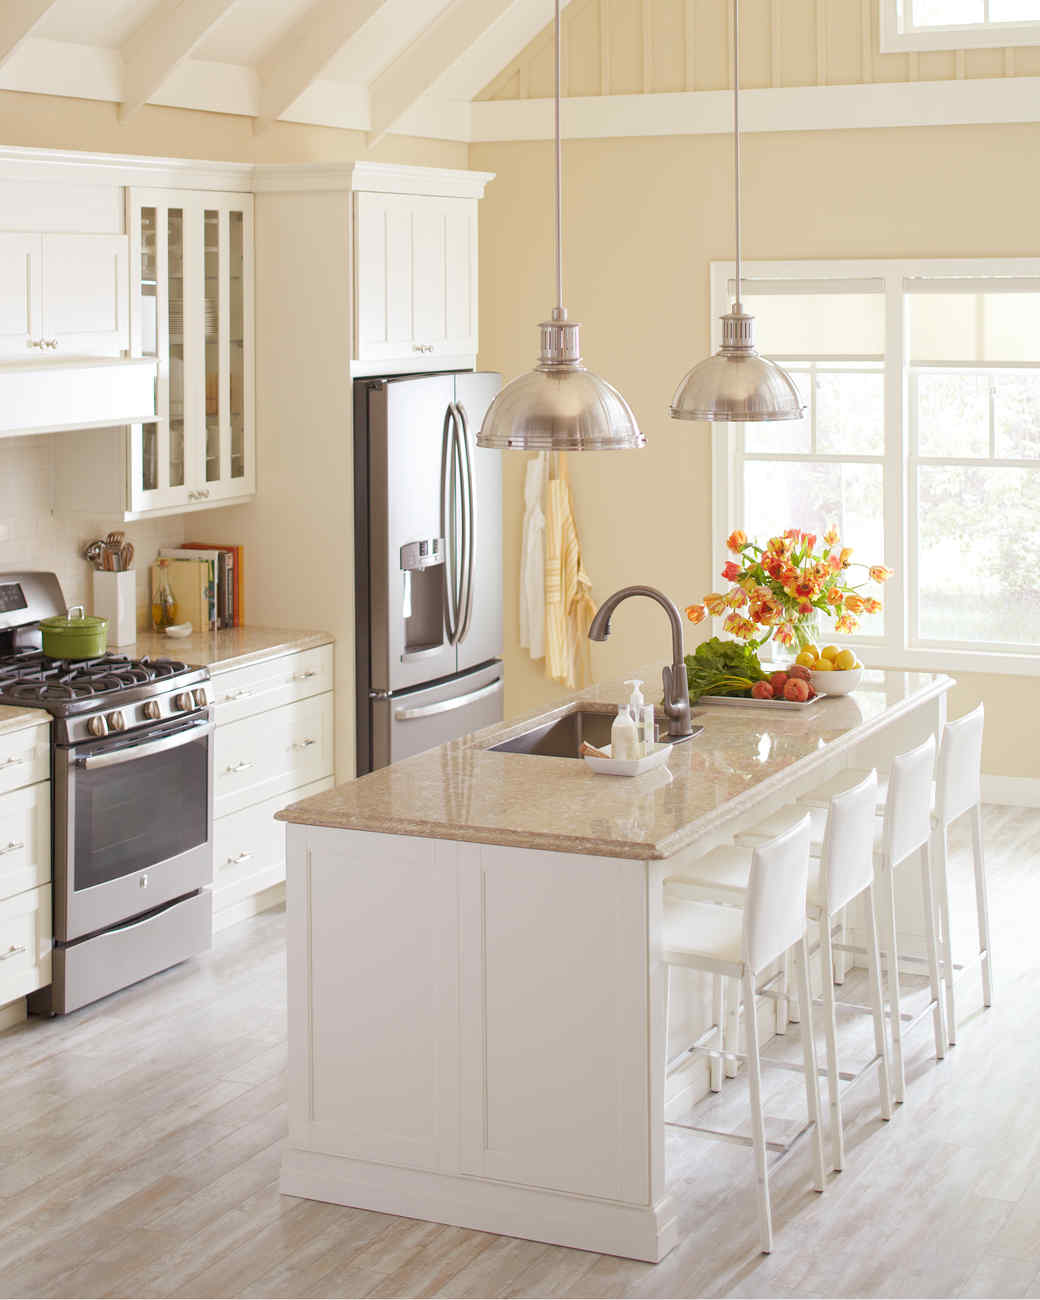 Home depot quartz and corian countertops martha stewart for Kitchen upgrades